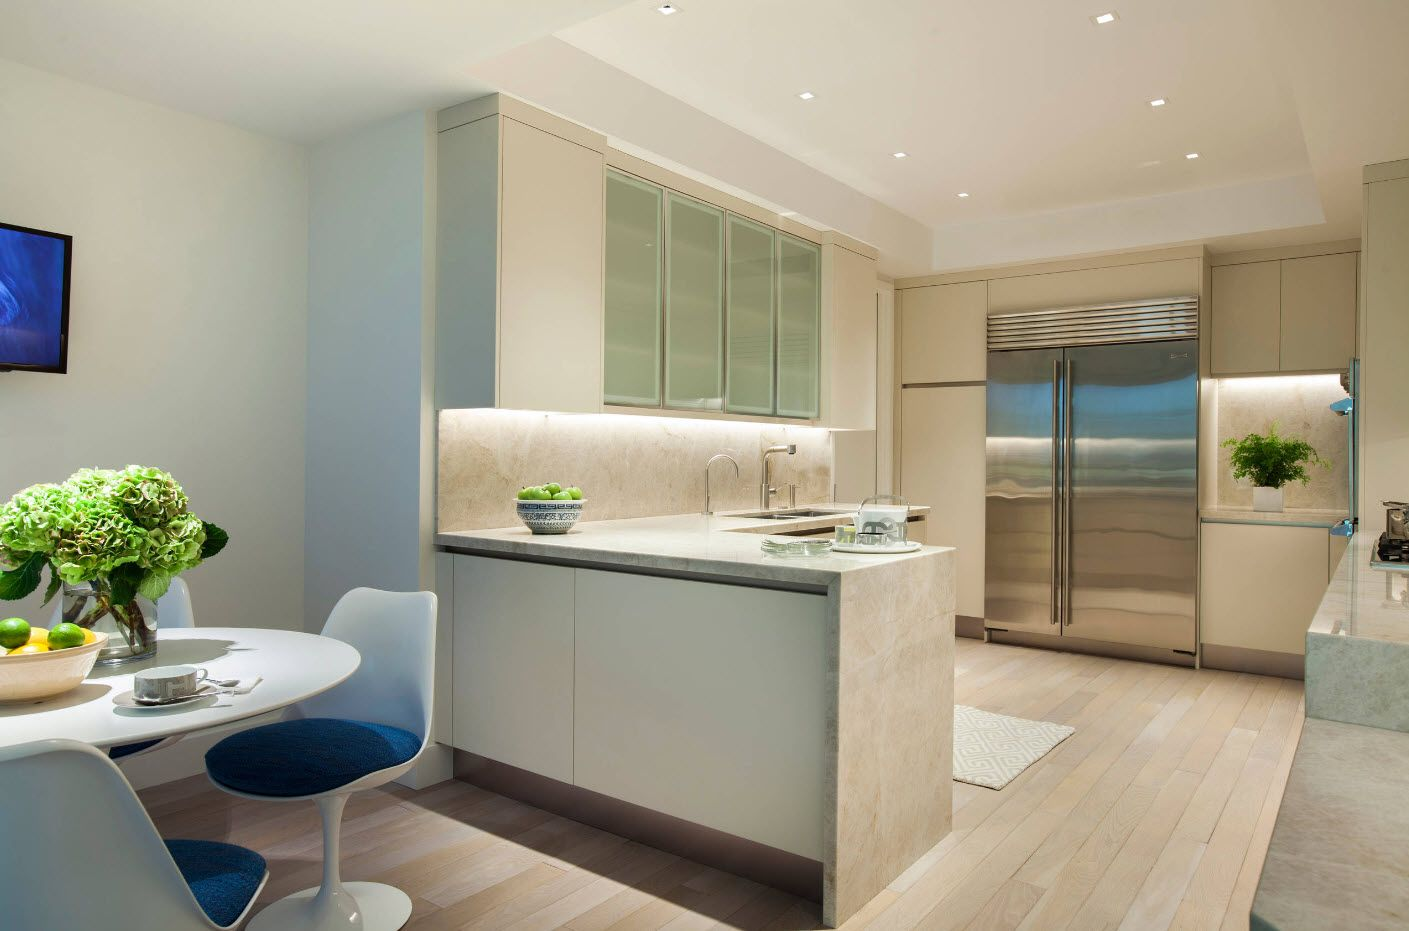 Nice white design of the contemporary styled kitchen